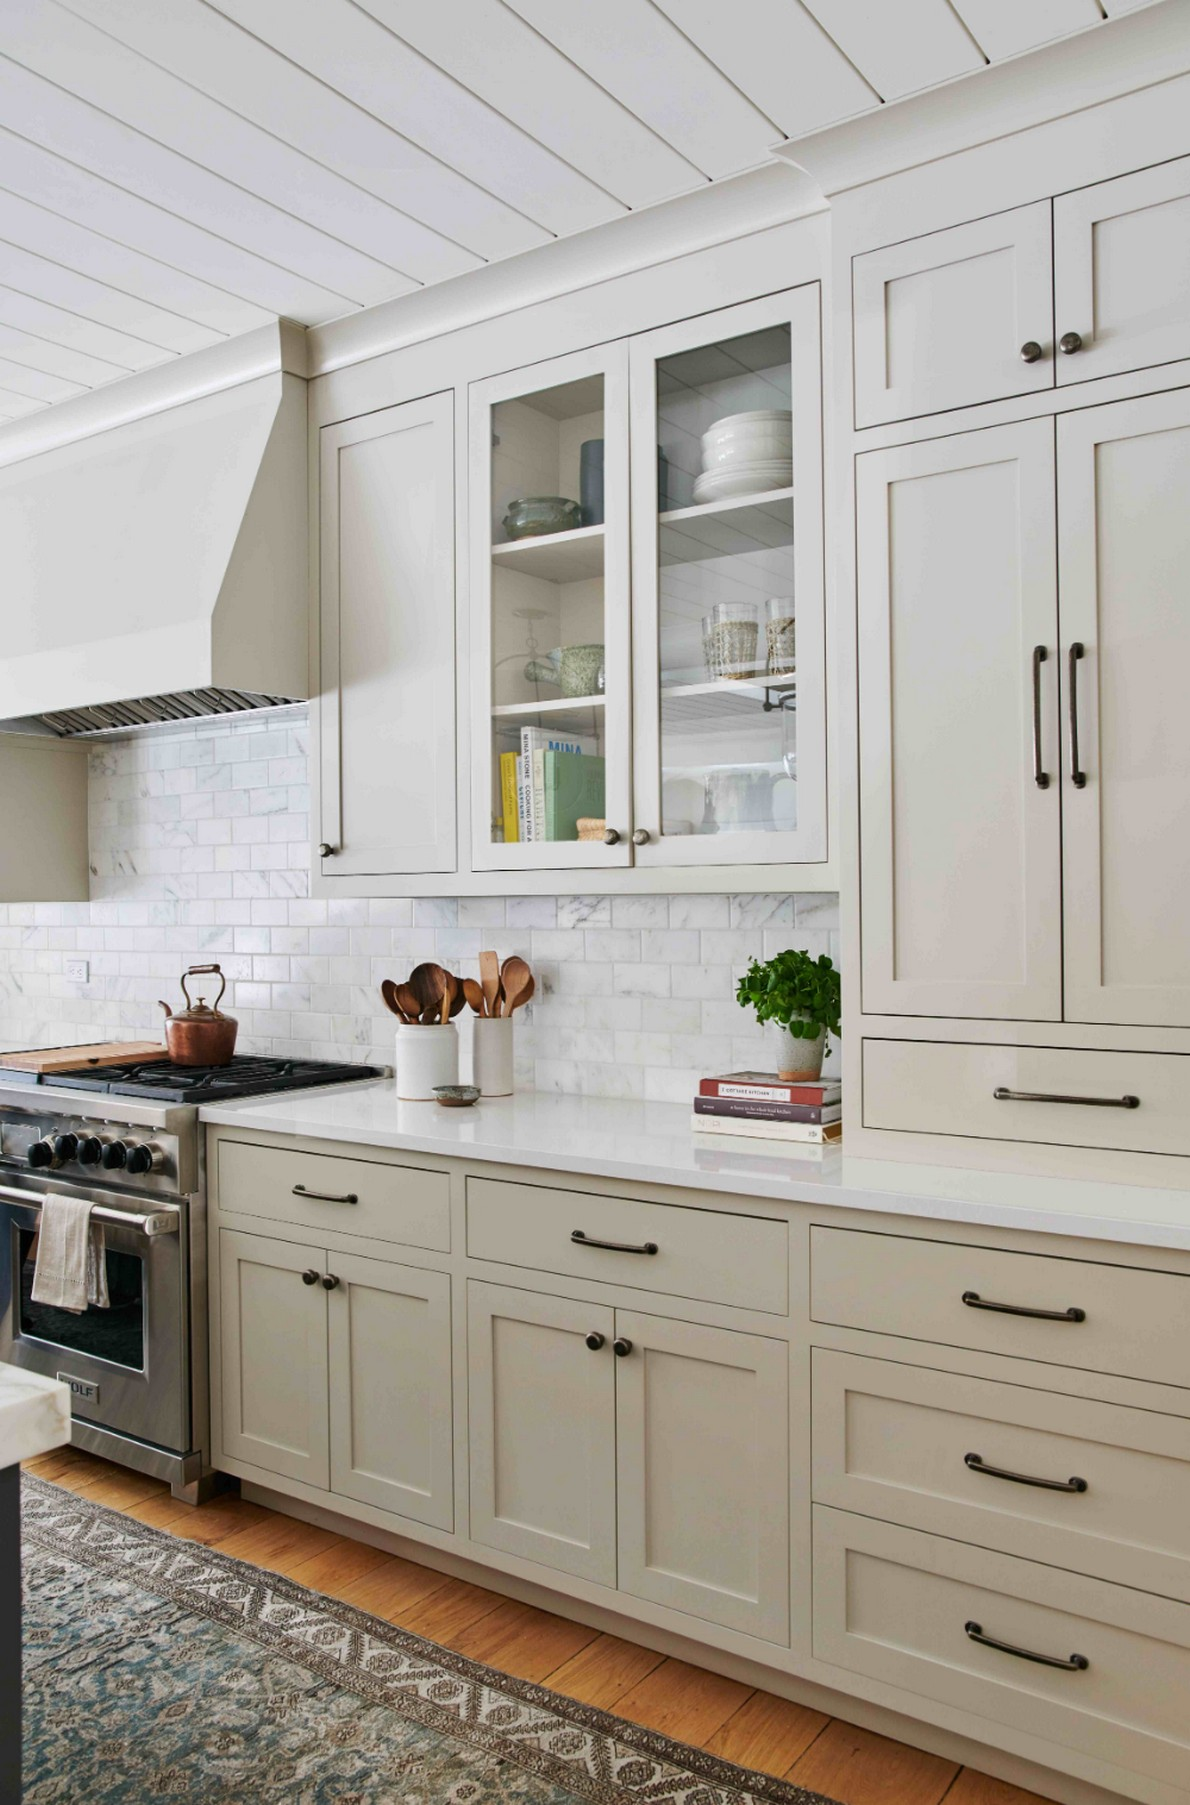 71 Painted Kitchen Cabinets Ideas For Home Decor 71